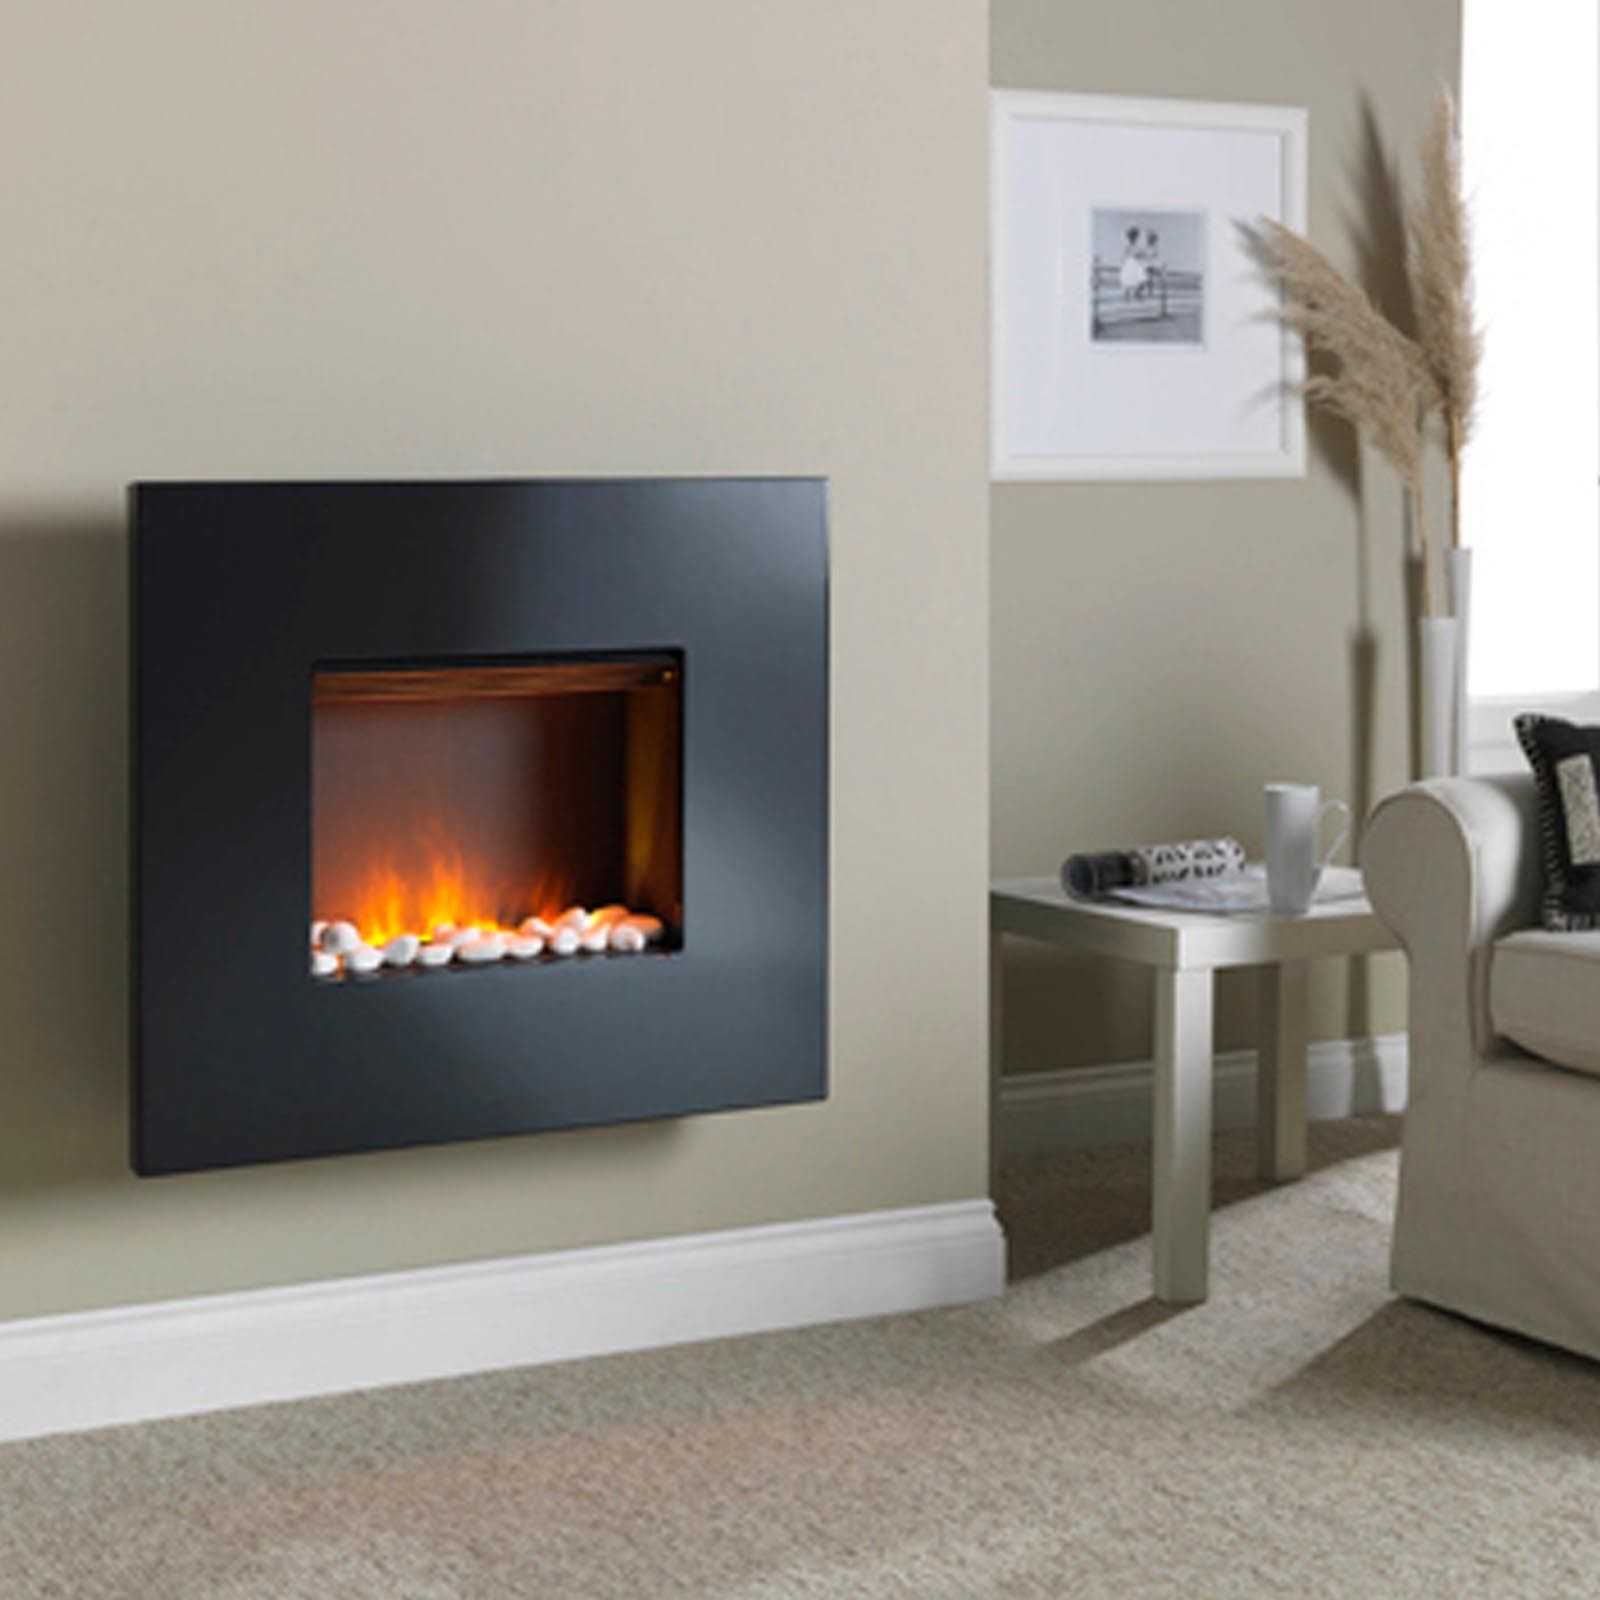 Dimplex Pemberley Opti Myst Wall Mounted Electric Fire